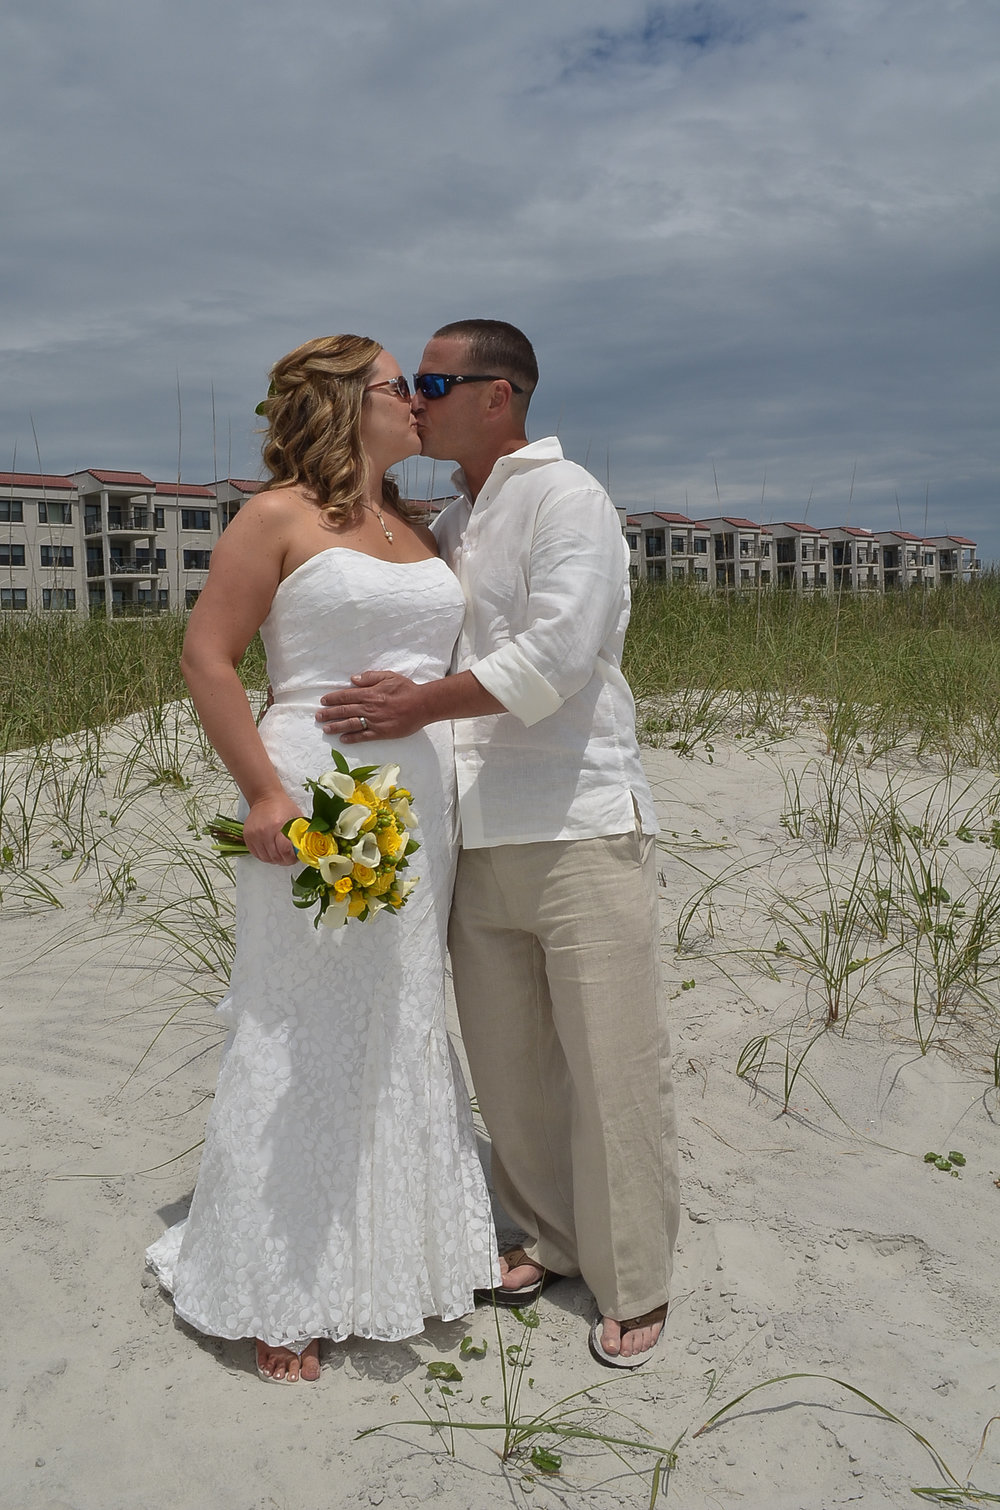 Bride and groom kissing on the beach.